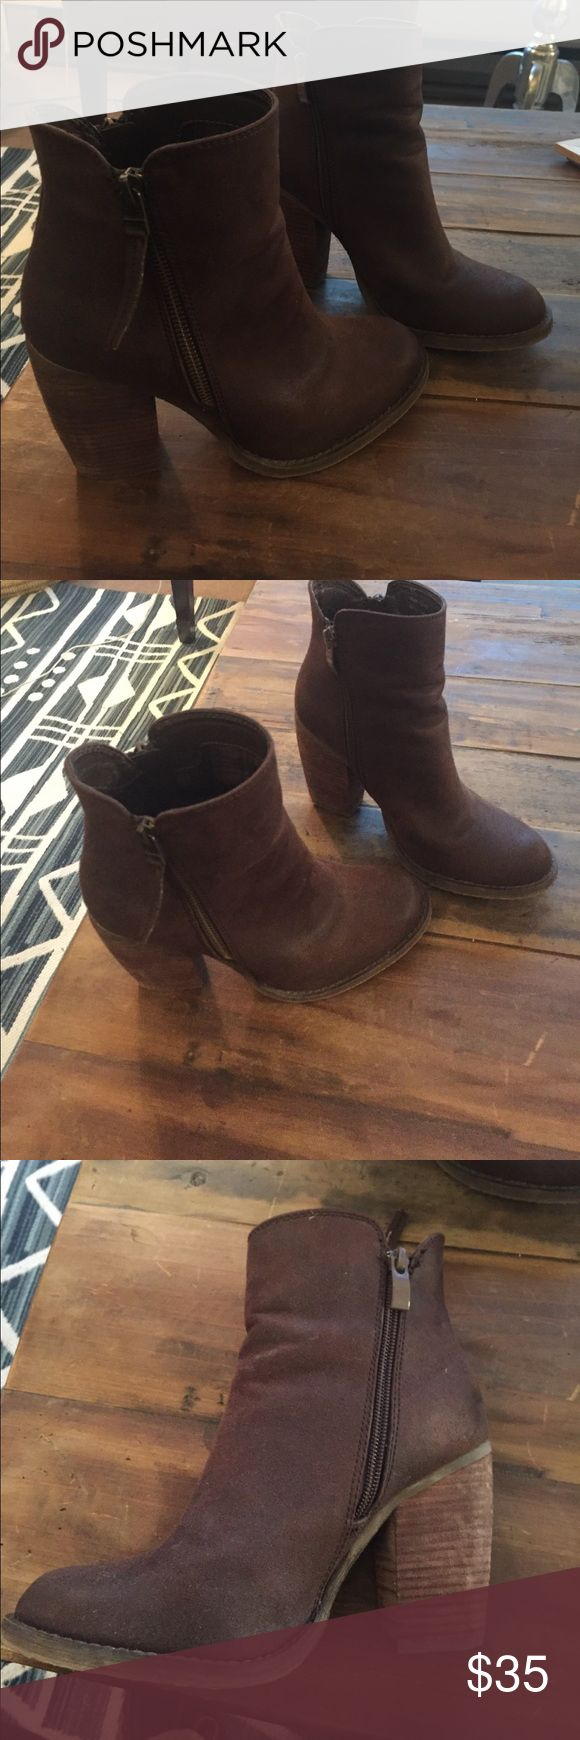 Women's booties Super cool and cute brown booties with two size zips- one on each side of shoe. Only worn one time- just didn't fit me. Perfect with dresses, jeans, leggings- everything! An every day go-to shoe! Shoes Ankle Boots & Booties